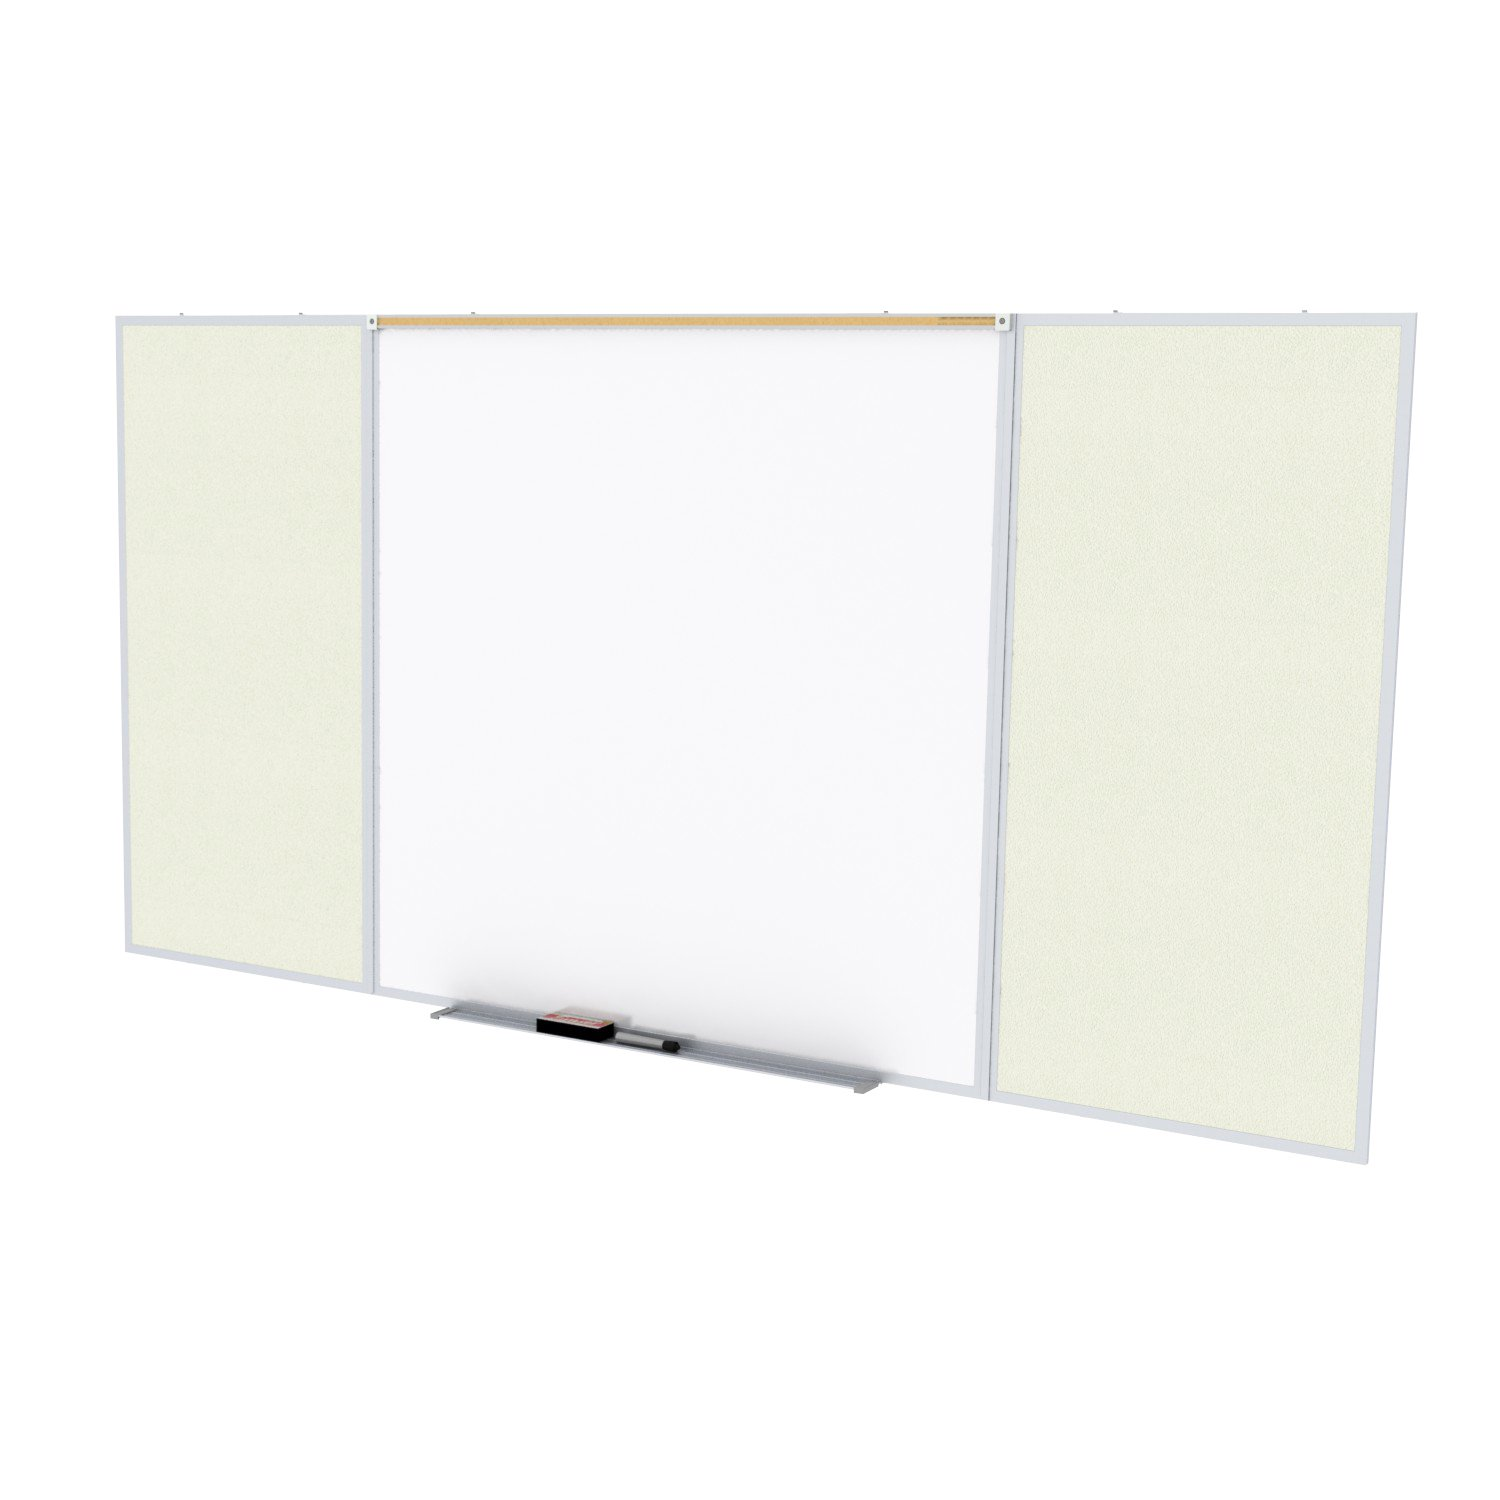 Ghent Style D 4 x 16 Feet Combination Board, Porcelain Magnetic Whiteboard and Vinyl Fabric Bulletin Board, Ivory , Made in the USA by Ghent